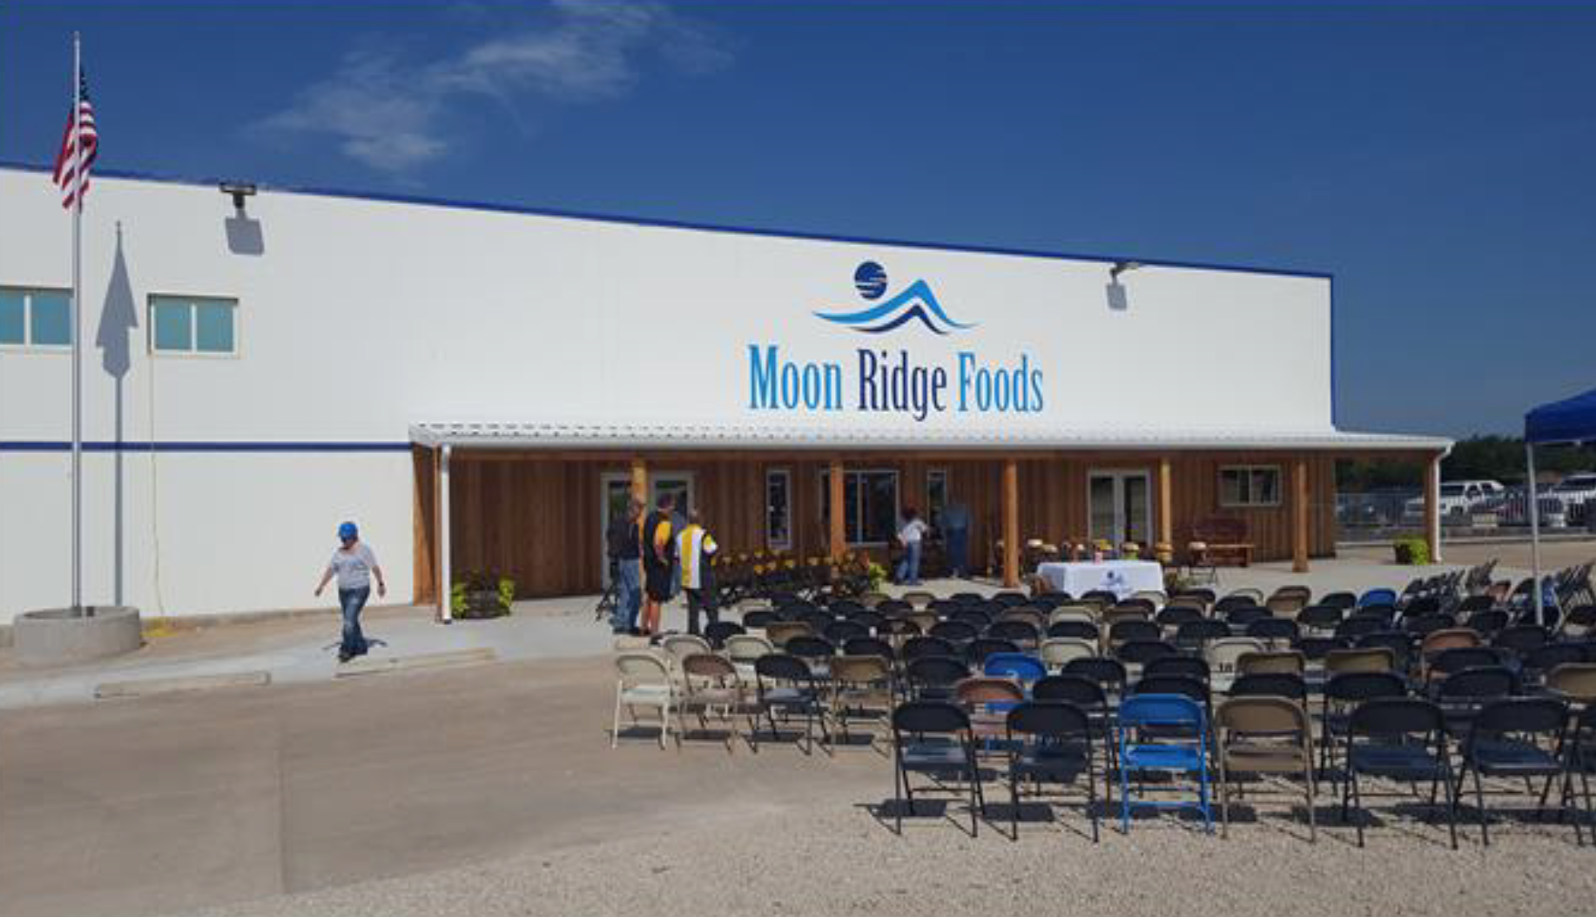 Moon Ridge Foods